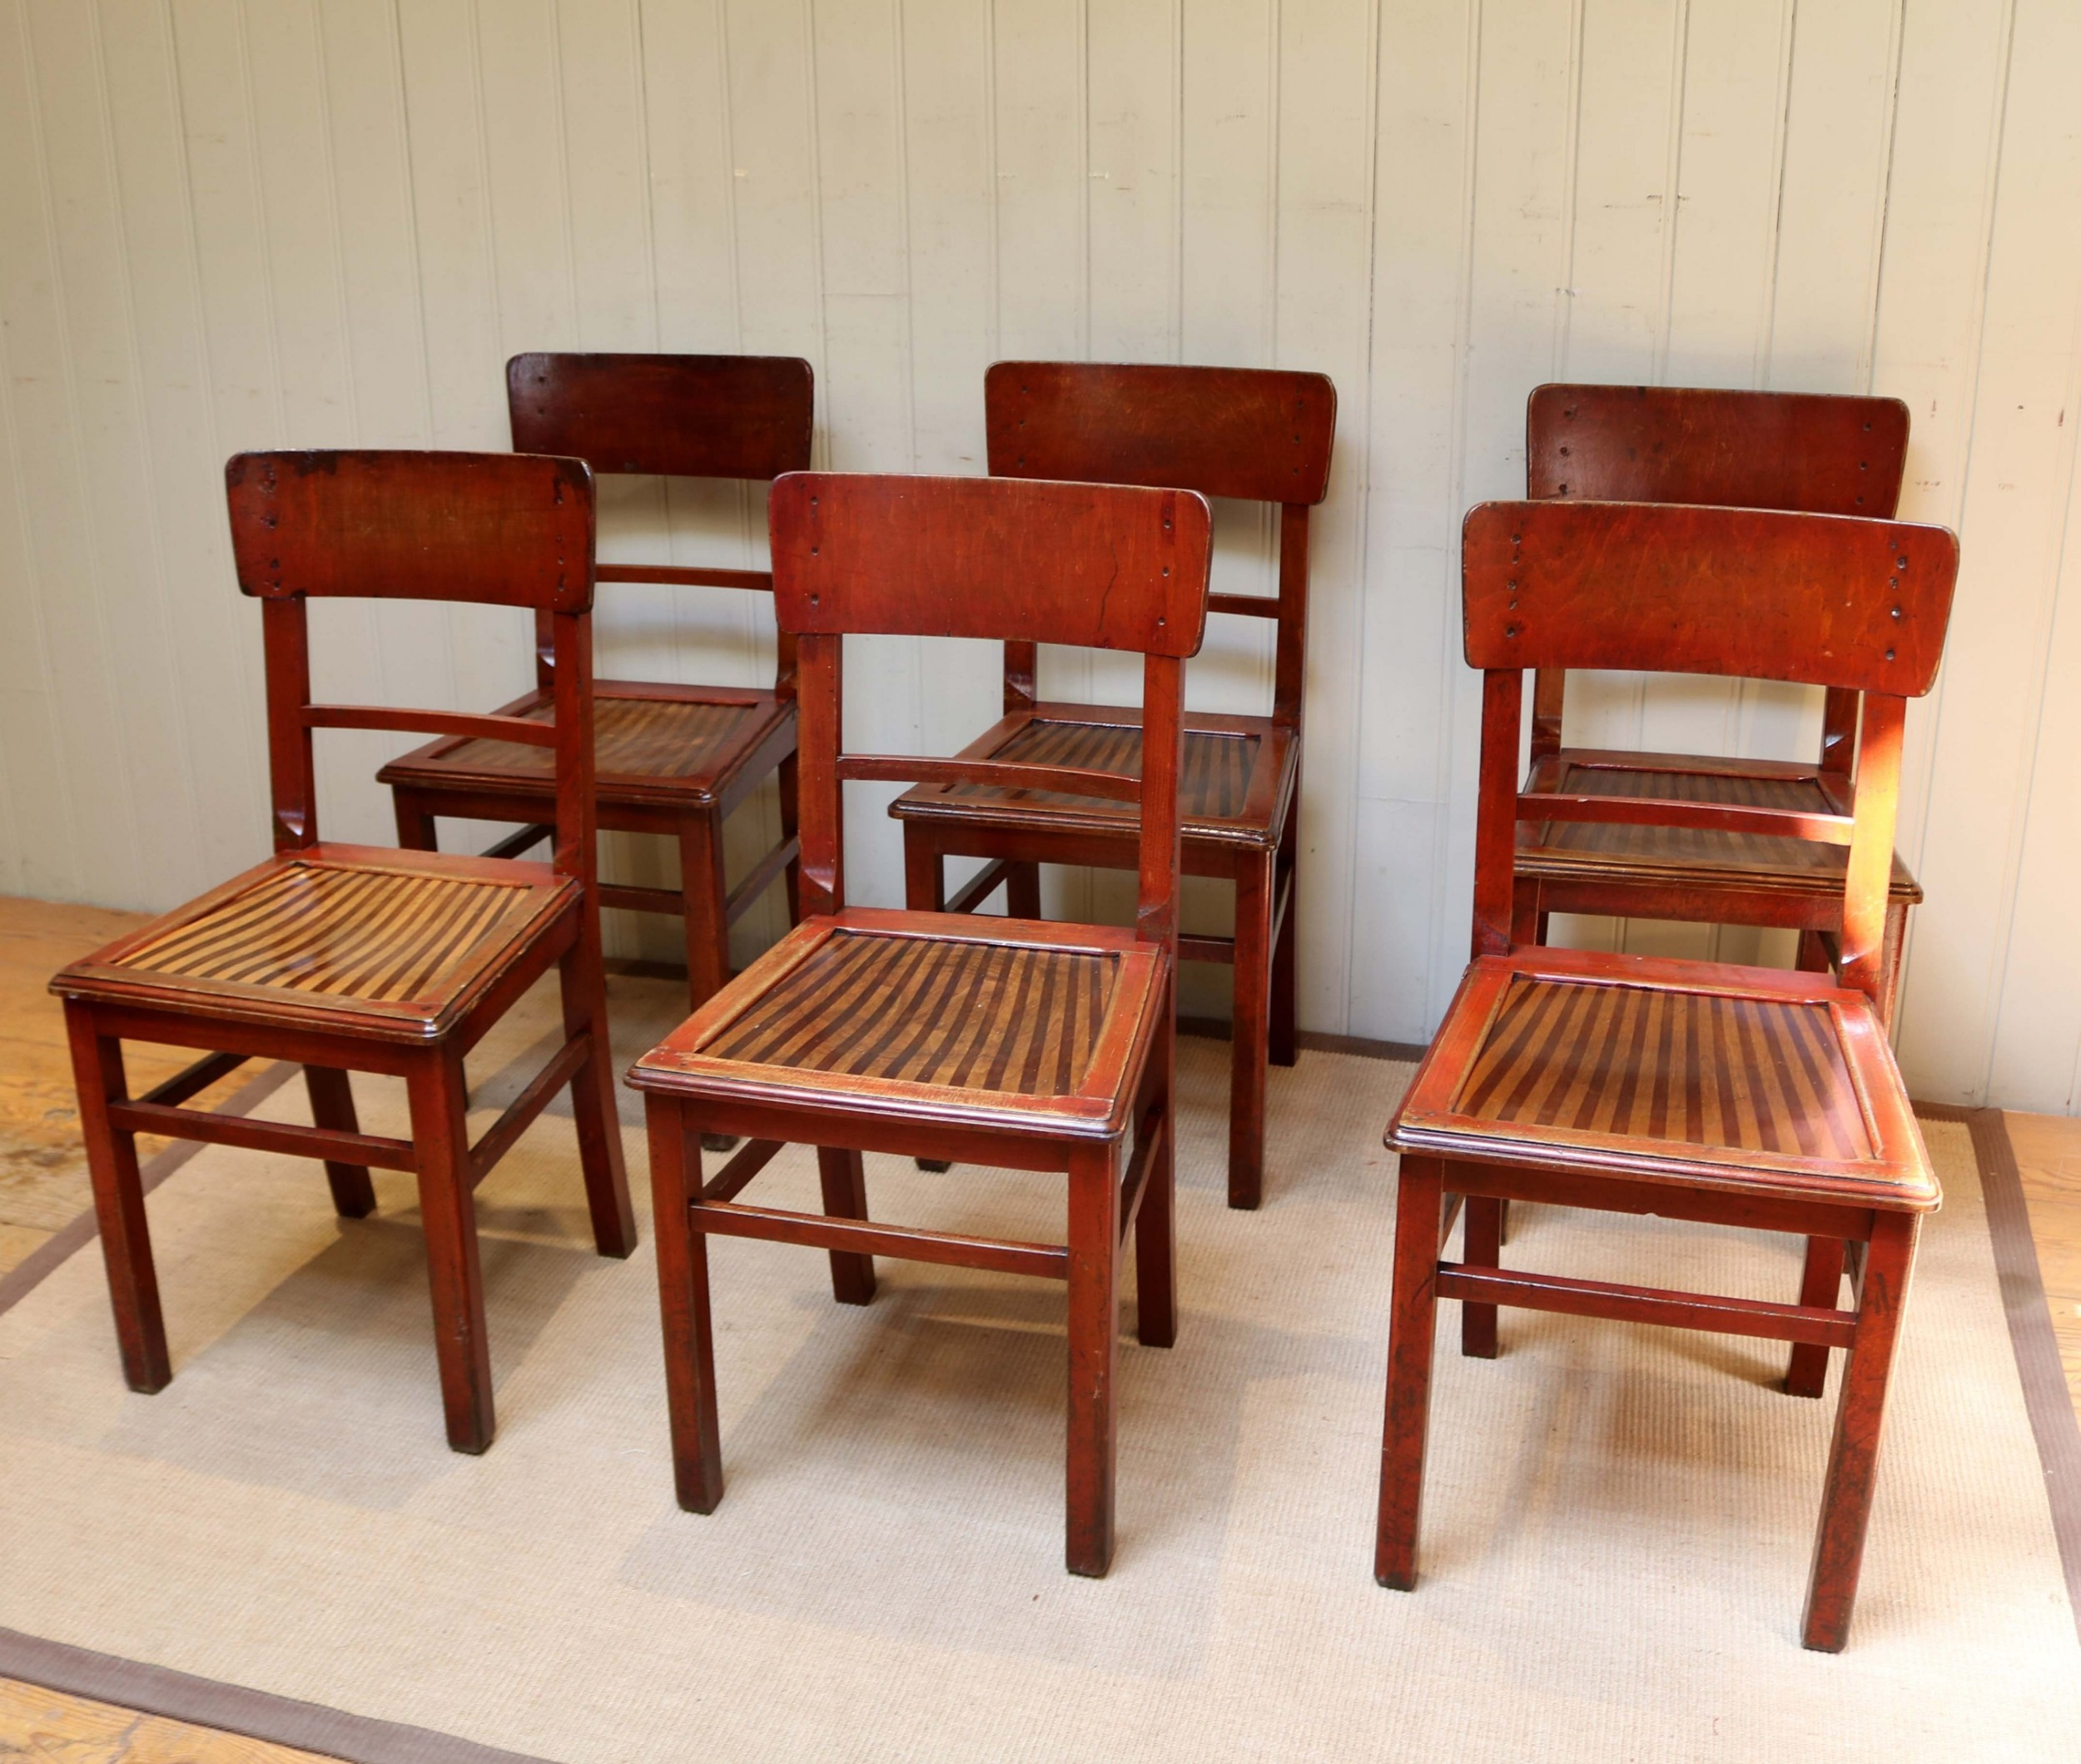 Tremendous Set Of Six French Bistro Chairs 561431 Sellingantiques Co Uk Home Interior And Landscaping Ponolsignezvosmurscom